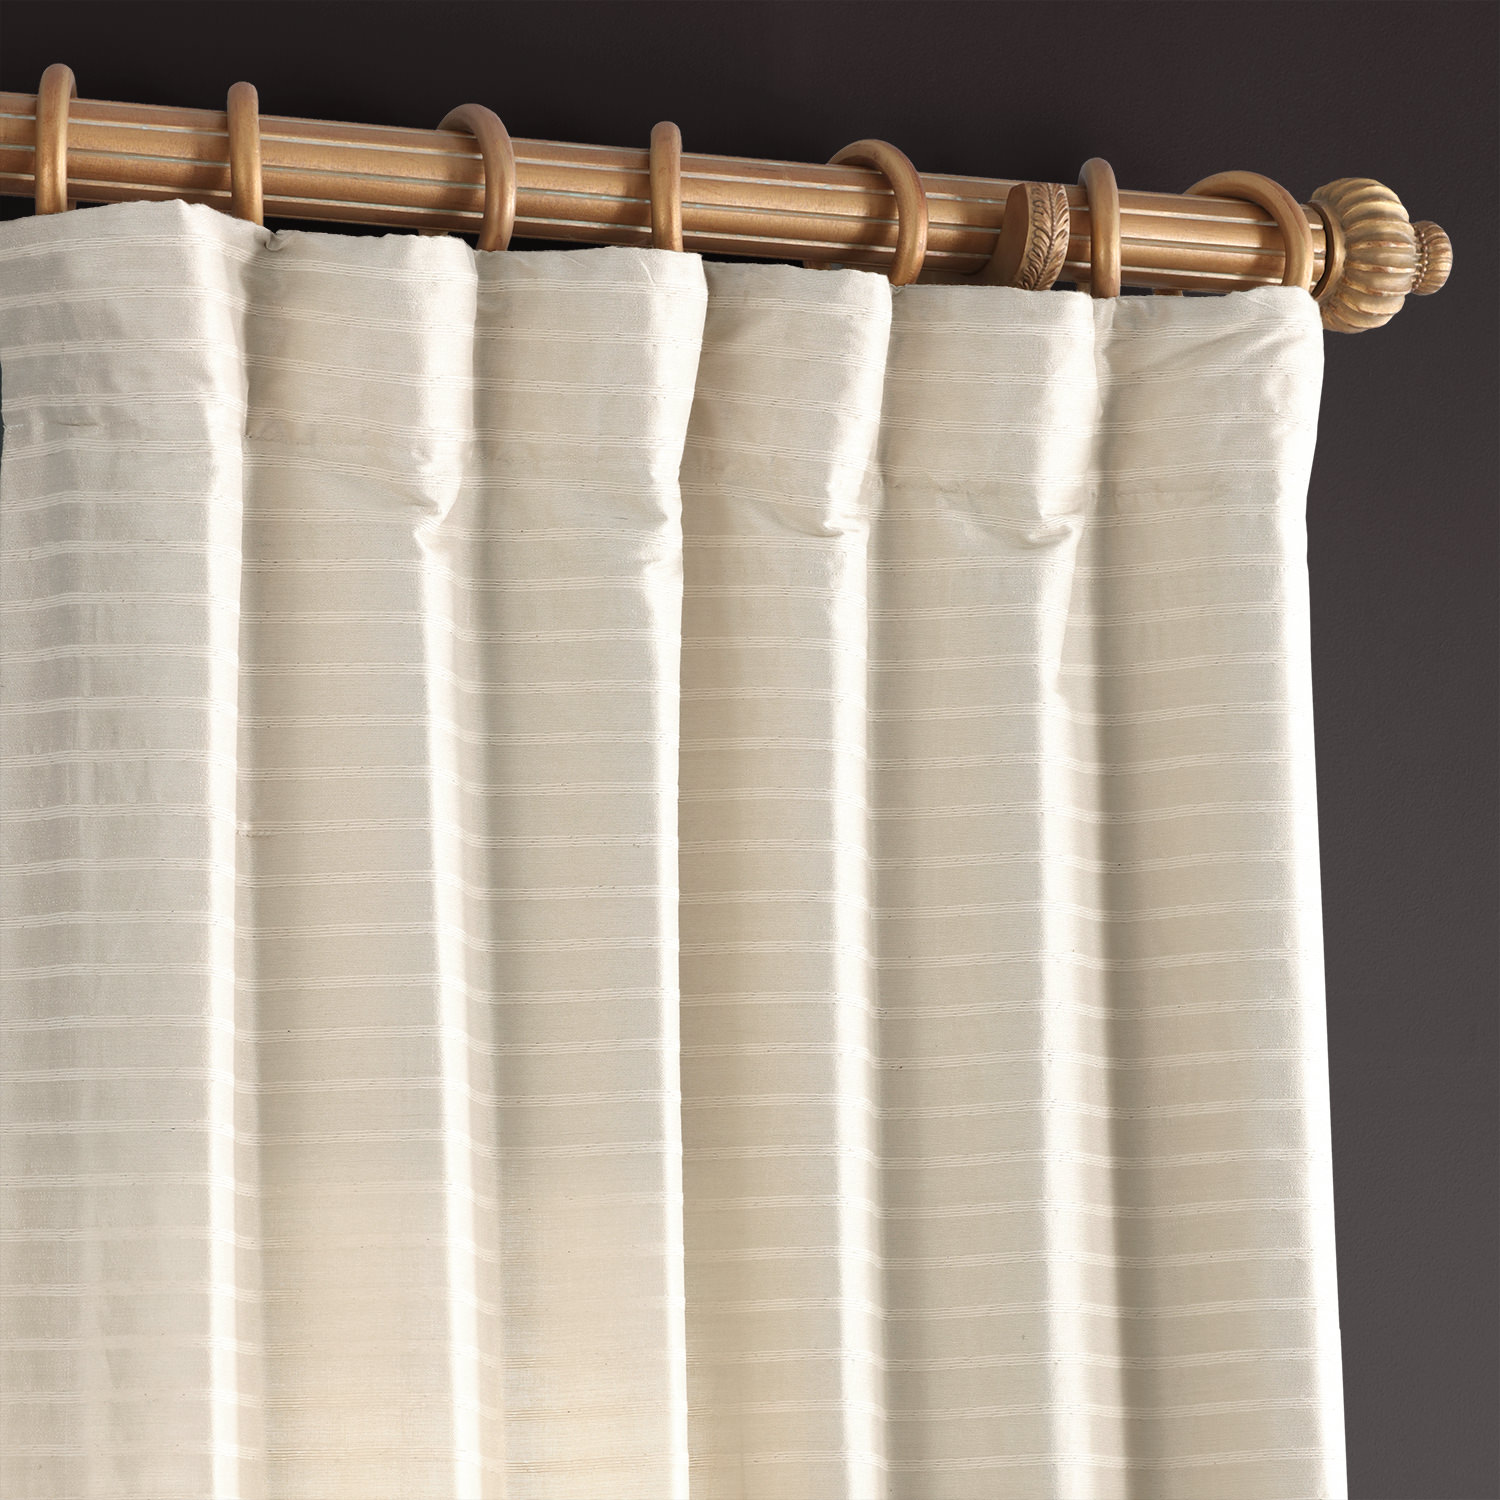 White Hand Weaved Cotton Curtain